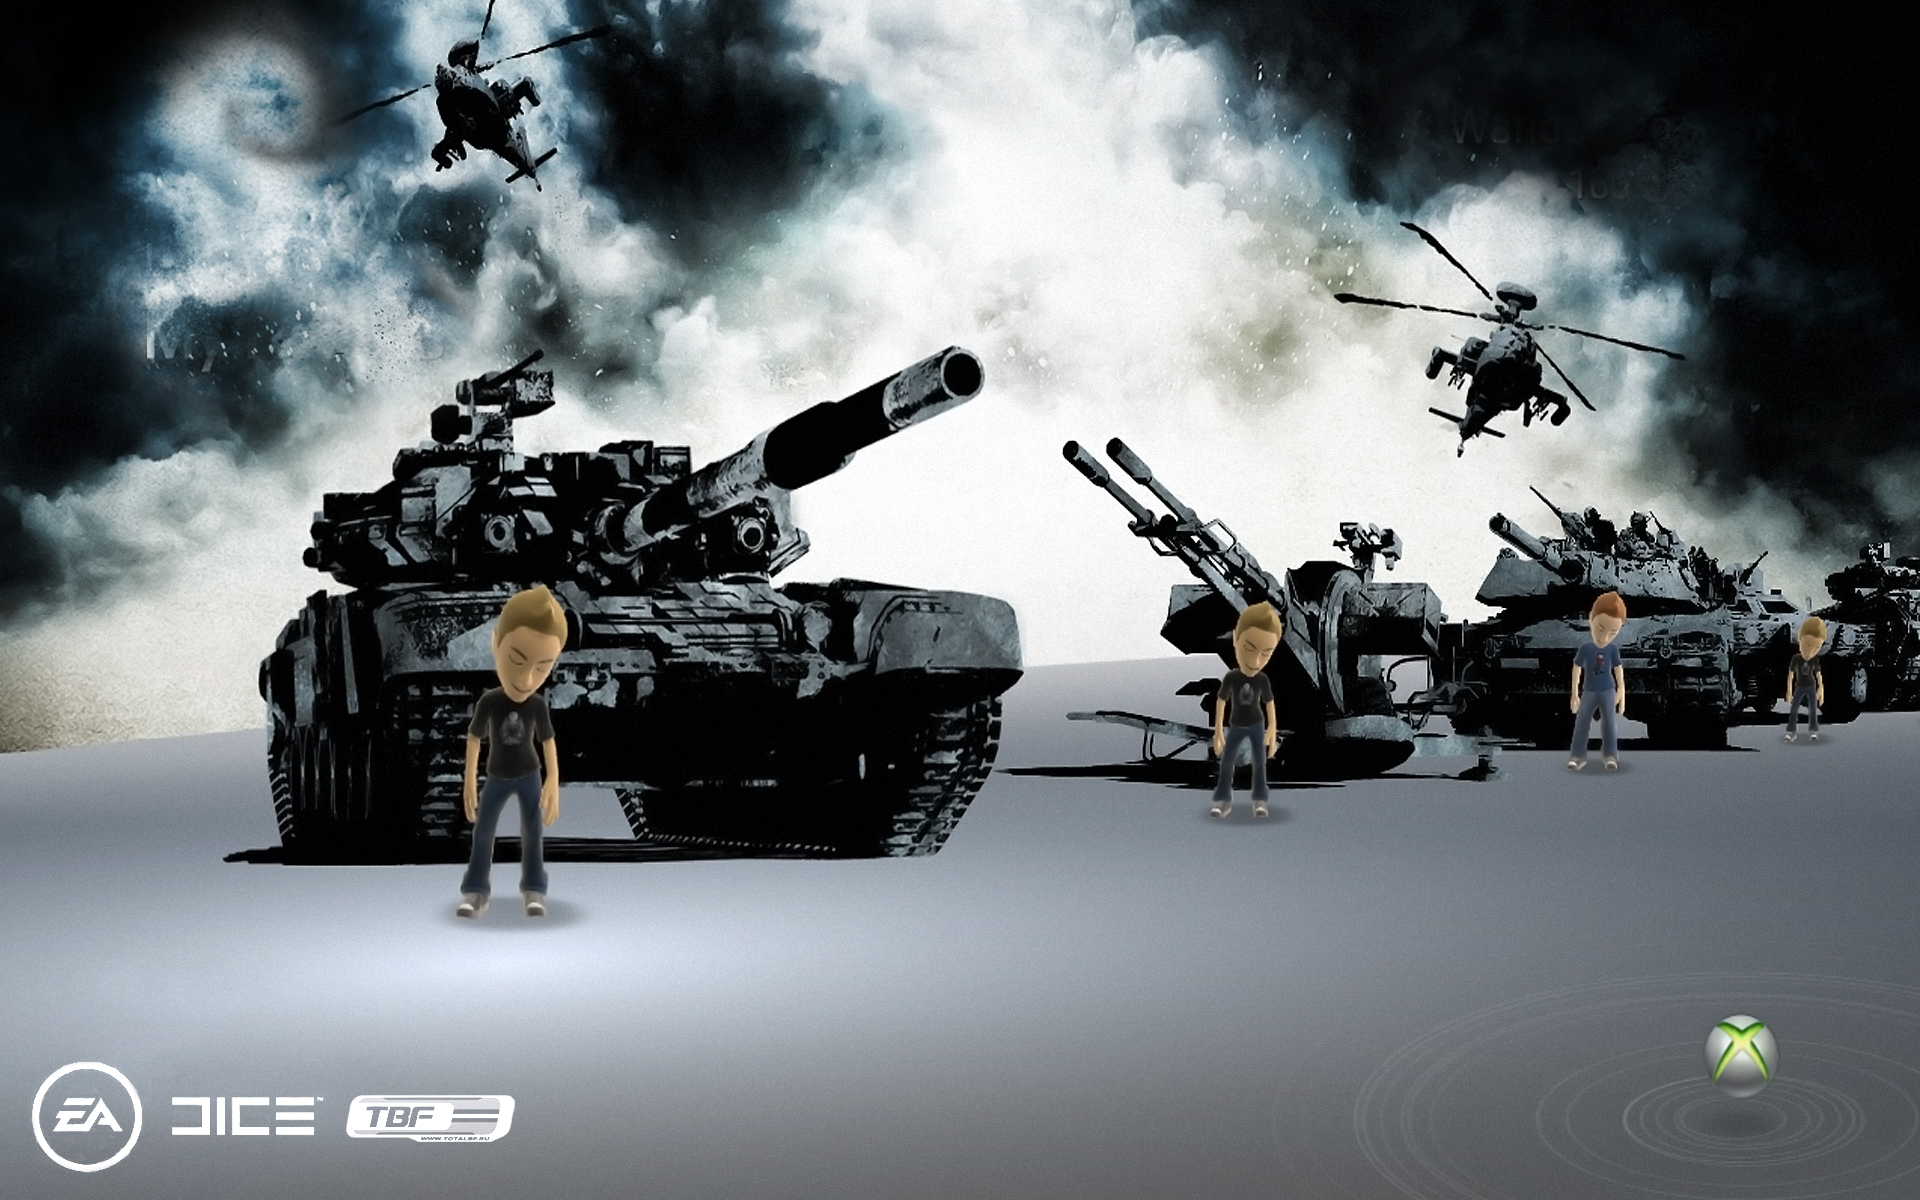 Battlefield bad company wallpaper - photo#14